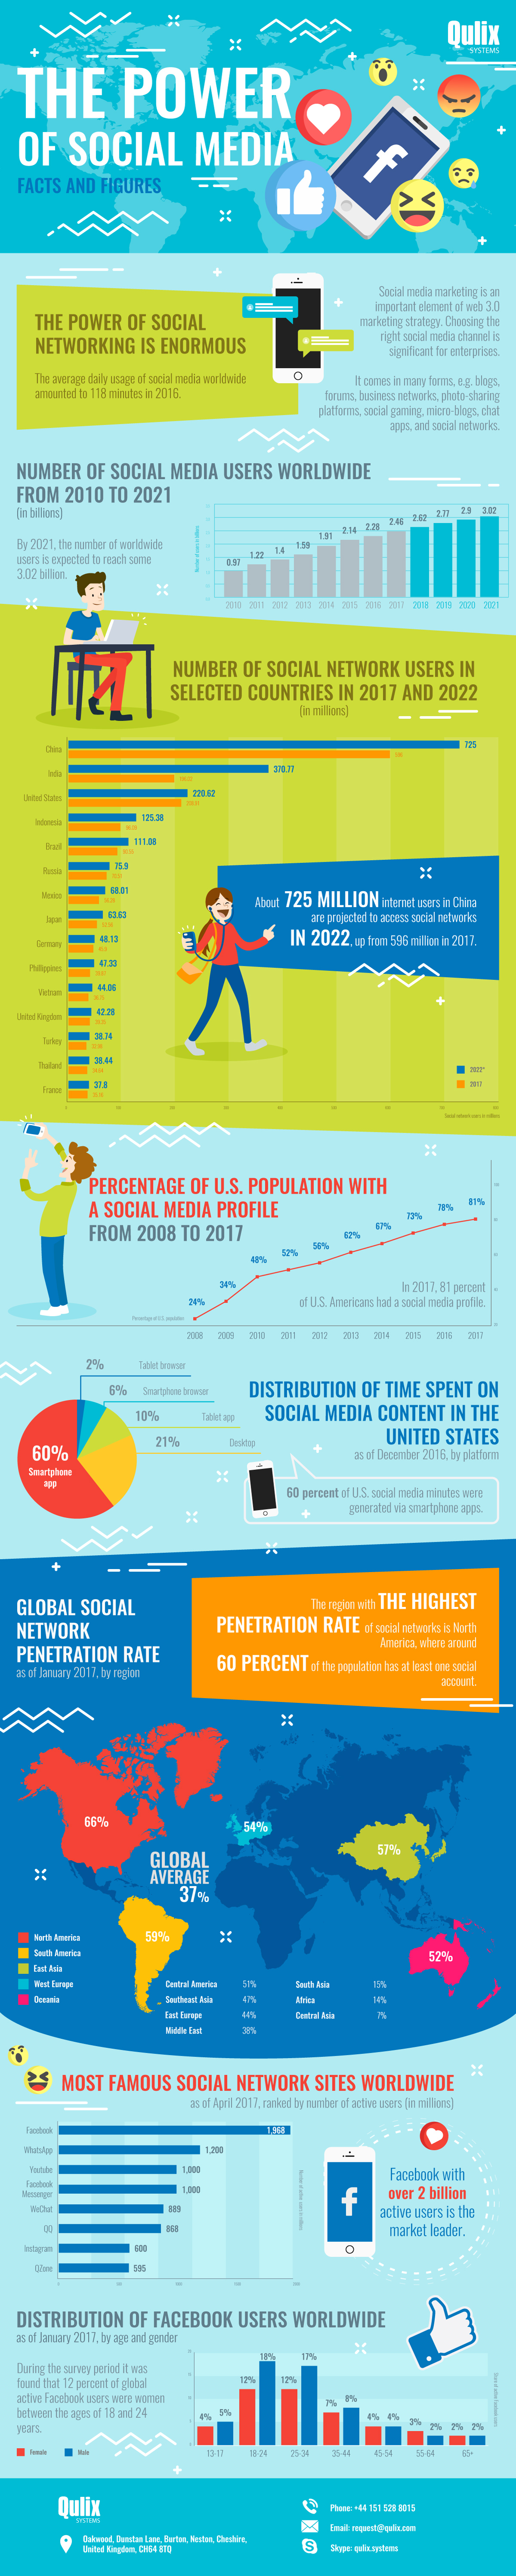 The-Power-of-Social-Media-Figures-and-Facts (2)